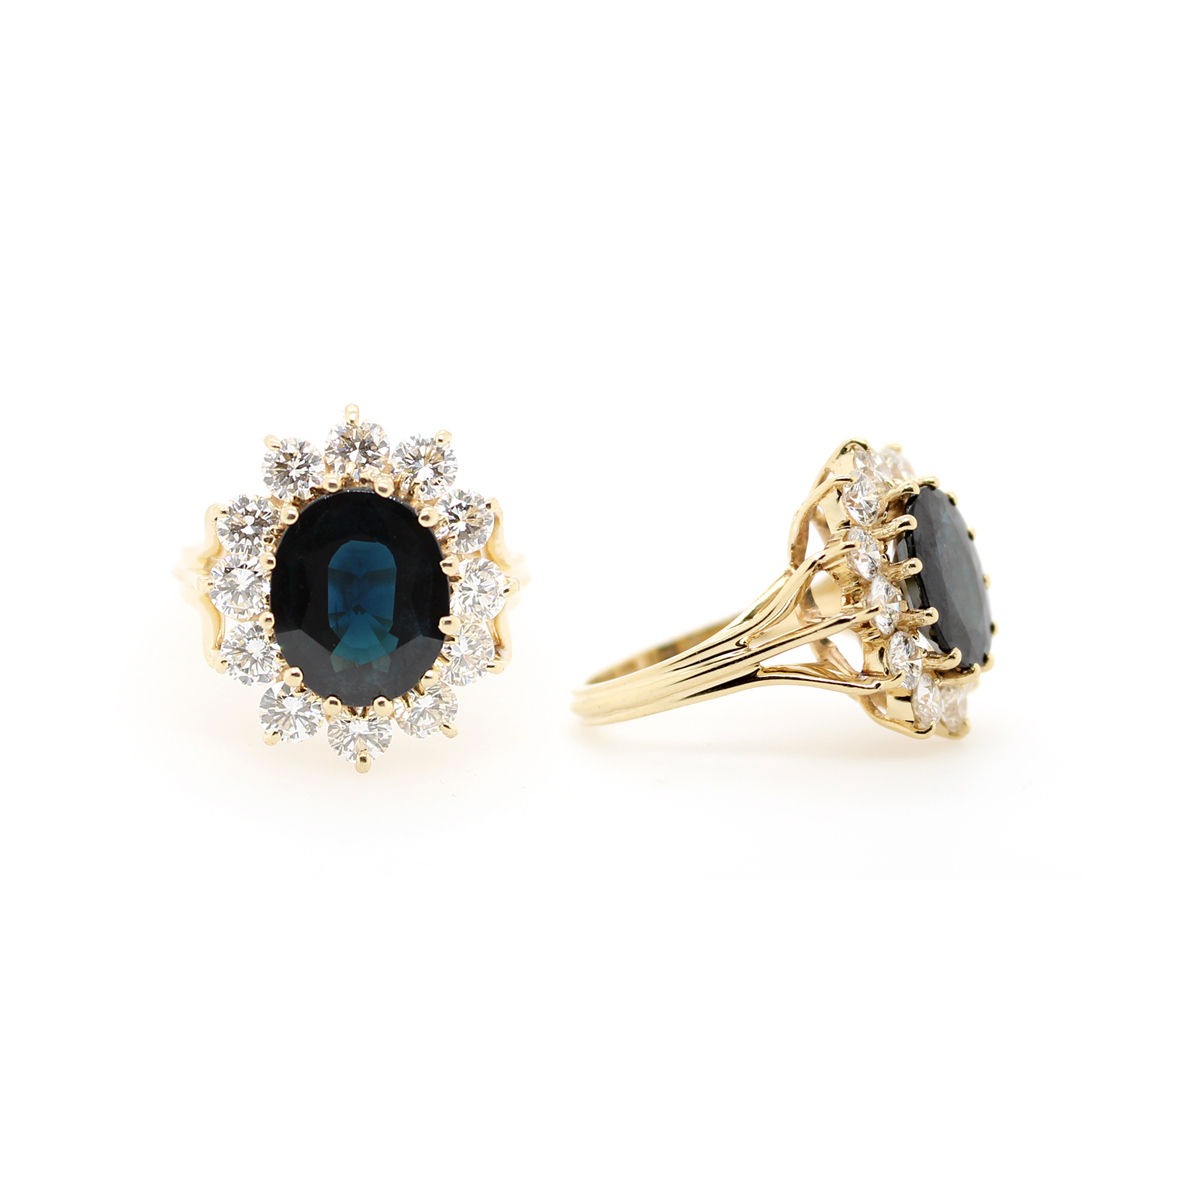 Estate 14 Karat Yellow Gold Blue Sapphire and Diamond Ring